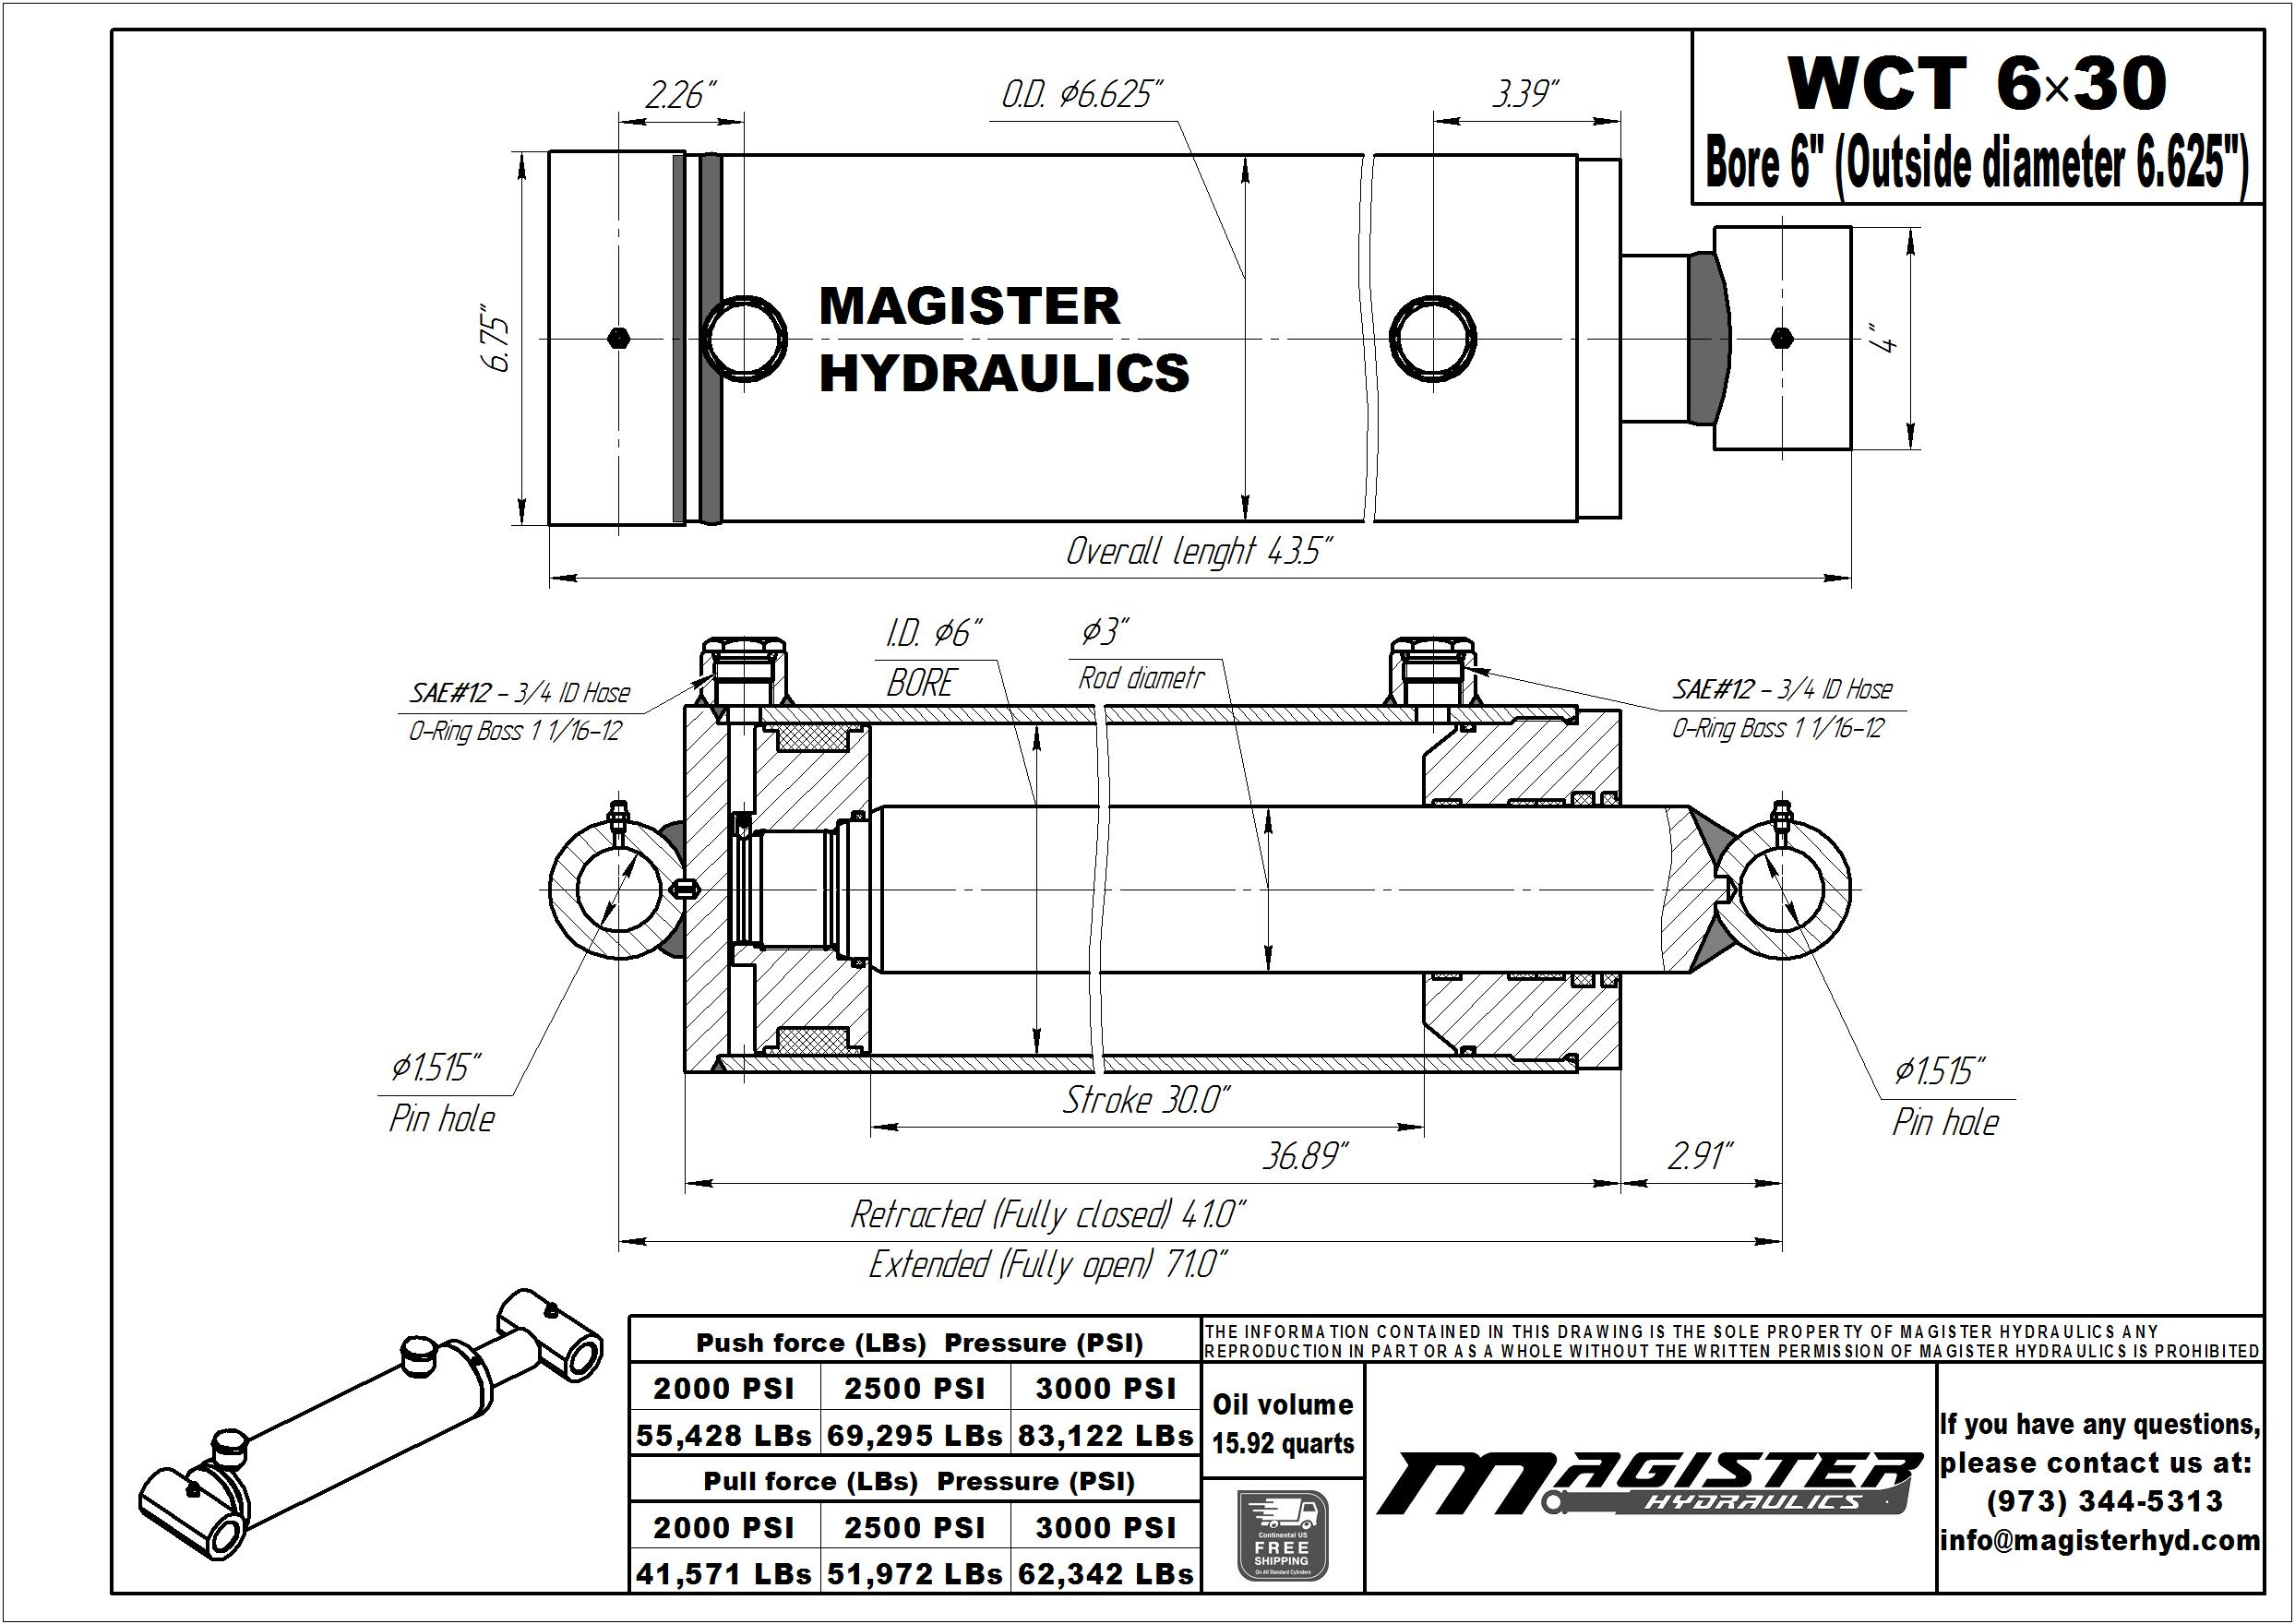 6 bore x 30 stroke hydraulic cylinder, welded cross tube double acting cylinder   Magister Hydraulics